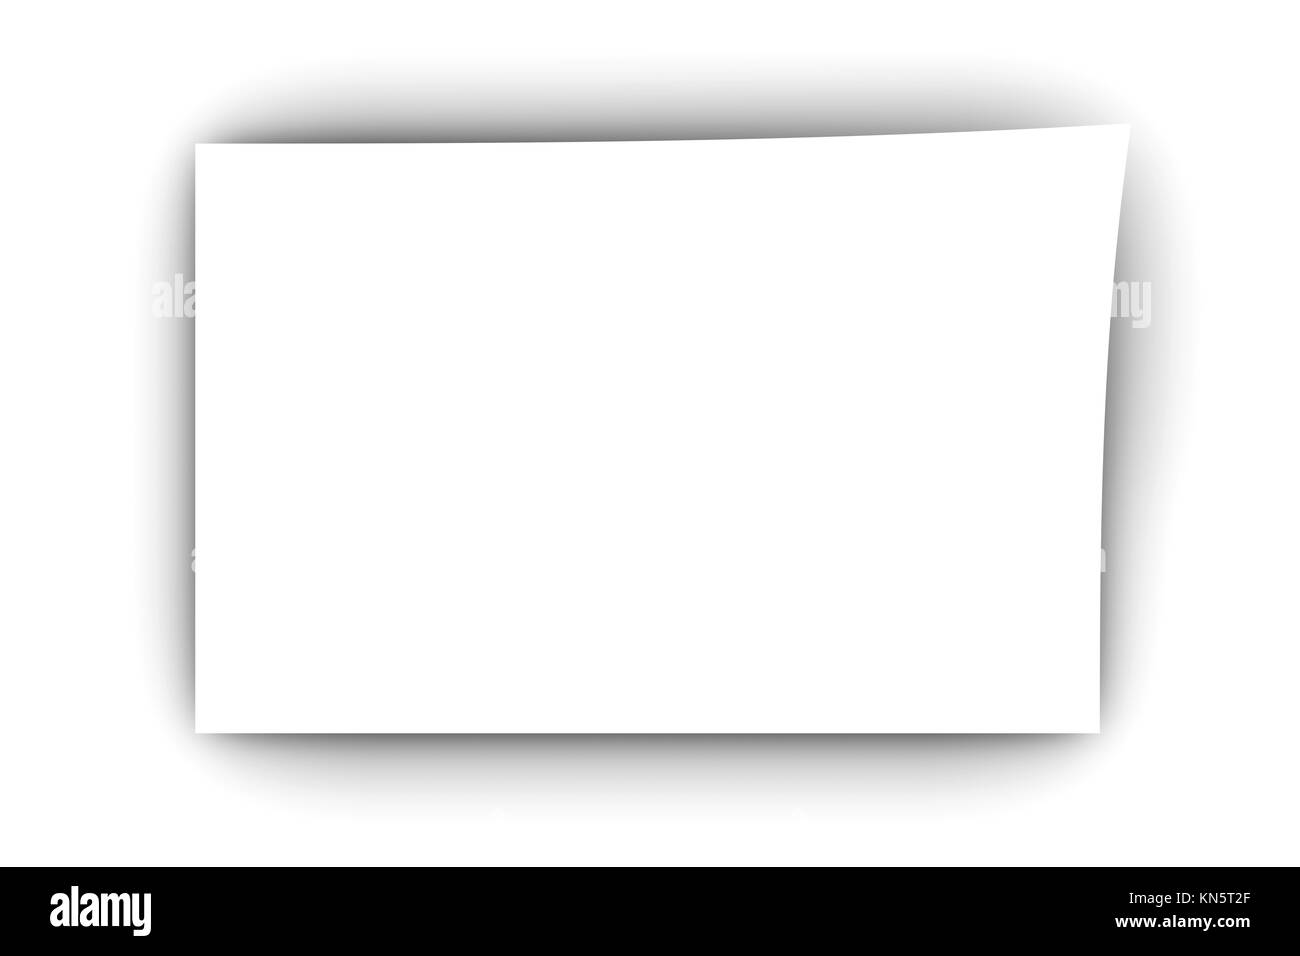 A blank piece of paper. 3D rendered Illustration. - Stock Image